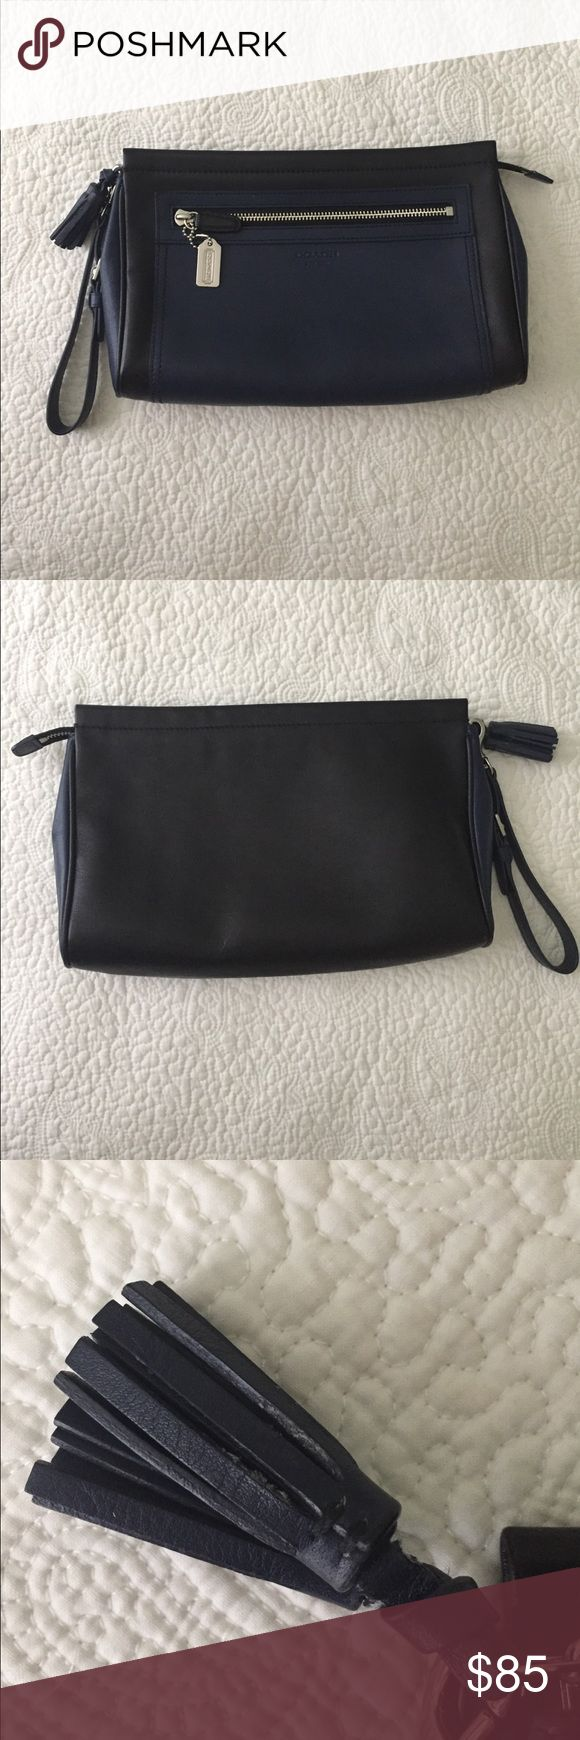 "Coach Legacy Large Colorblock Clutch Wristlet Coach Legacy large colorblock clutch.  Used, but in good condition.  Tassel and corners show a bit of wear.  Cotton lined interior has a slip pocket.  Front pocket can hold my iPhone 6.  Overall clean and nice!  Approximately 10"" long. Coach Bags Clutches & Wristlets"